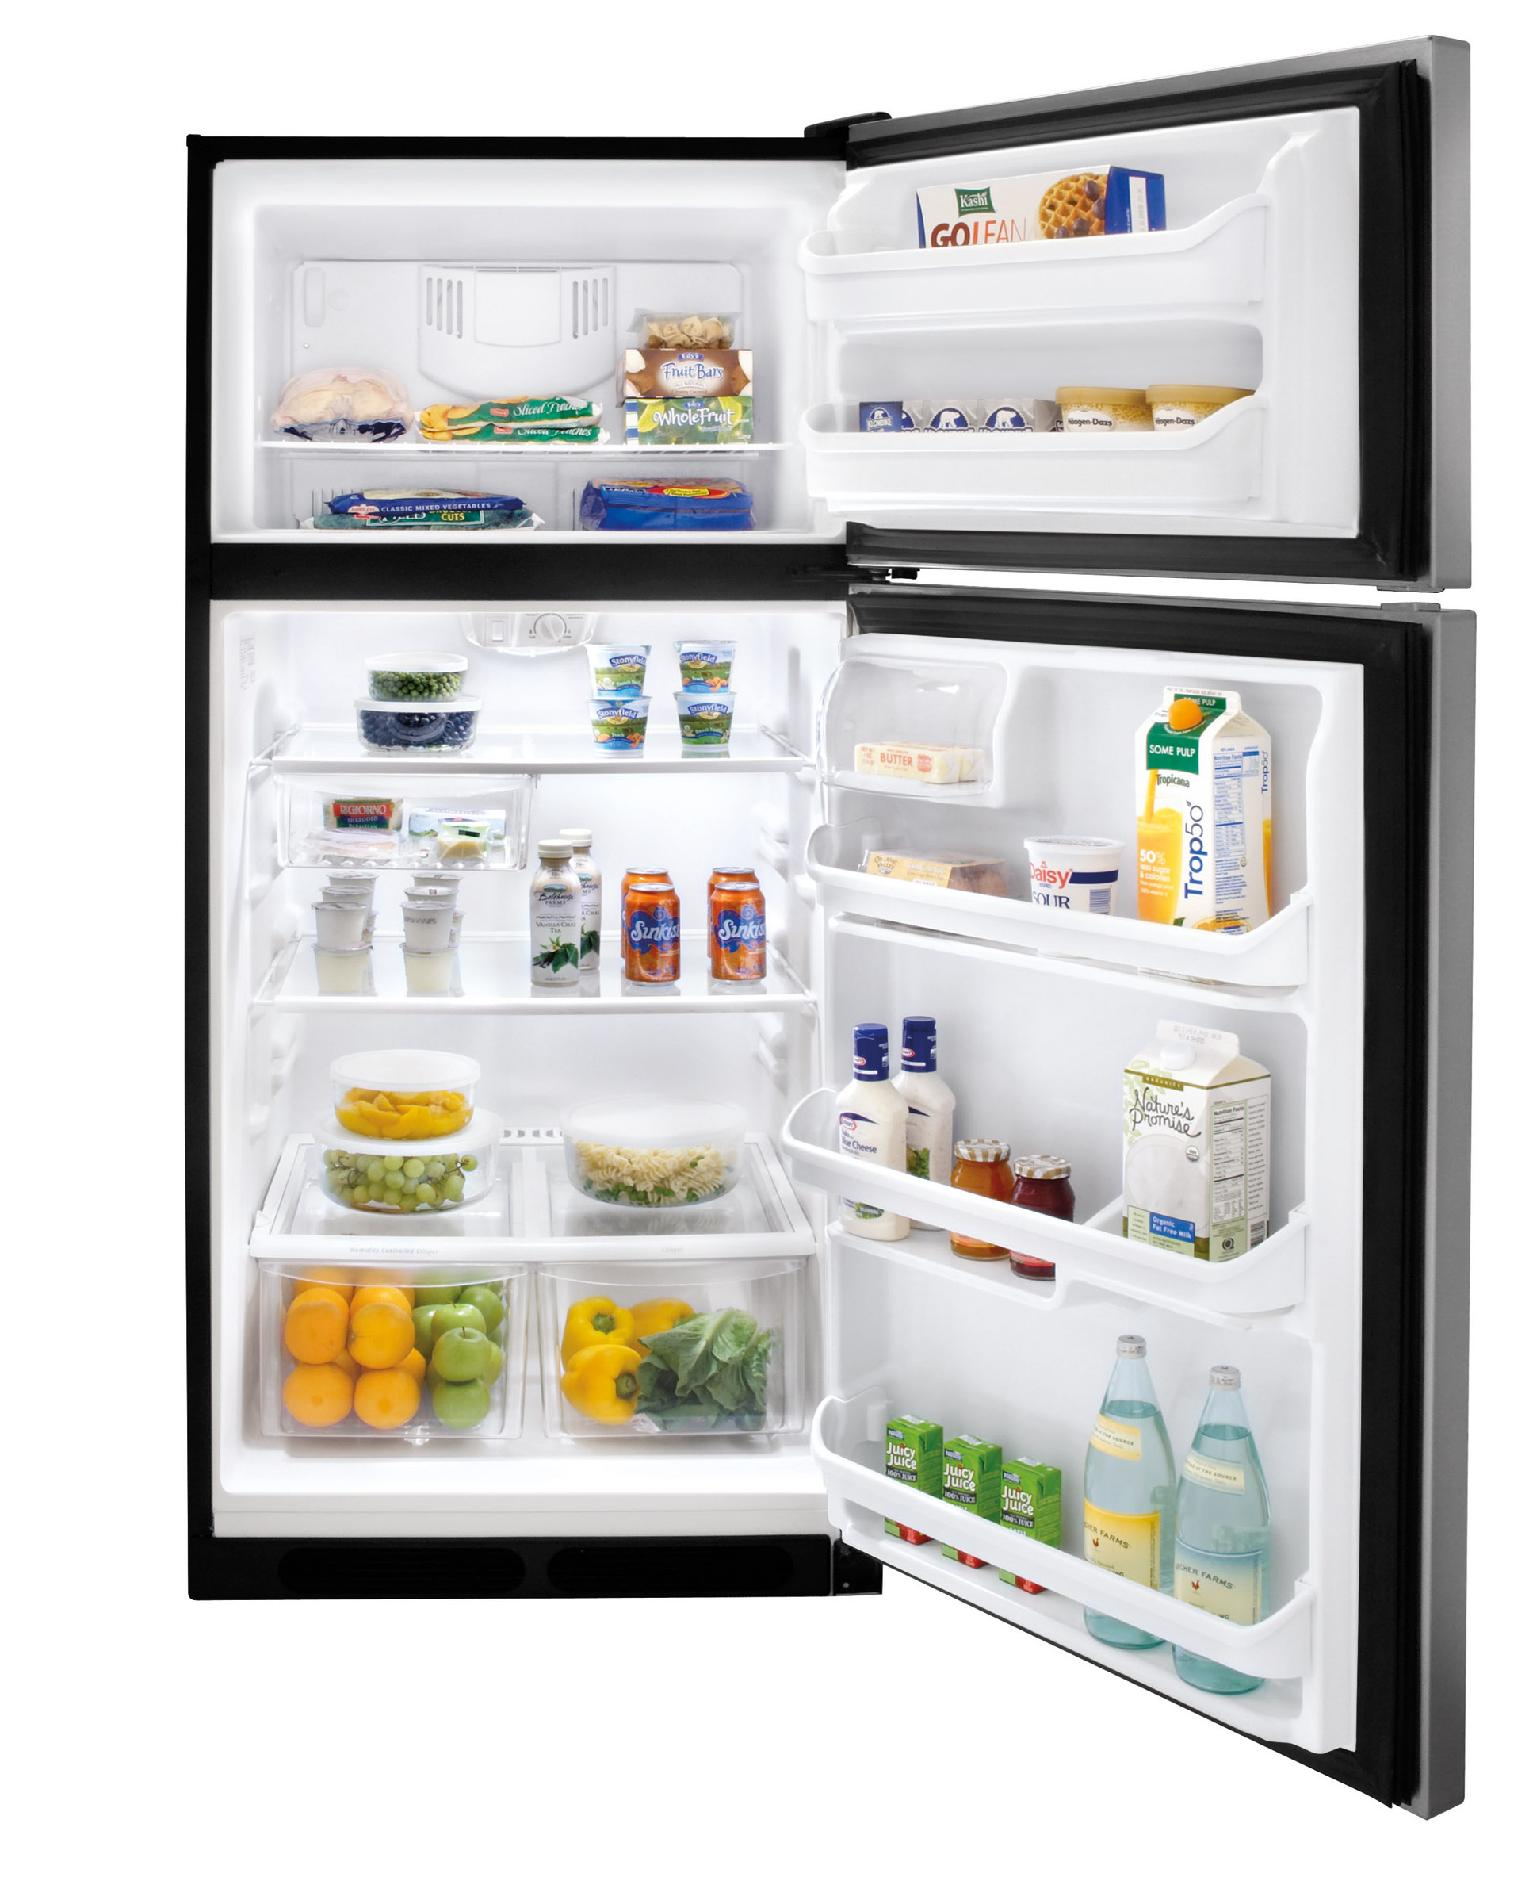 Frigidaire 18.3 cu. ft. Top-Freezer Refrigerator - Stainless Steel